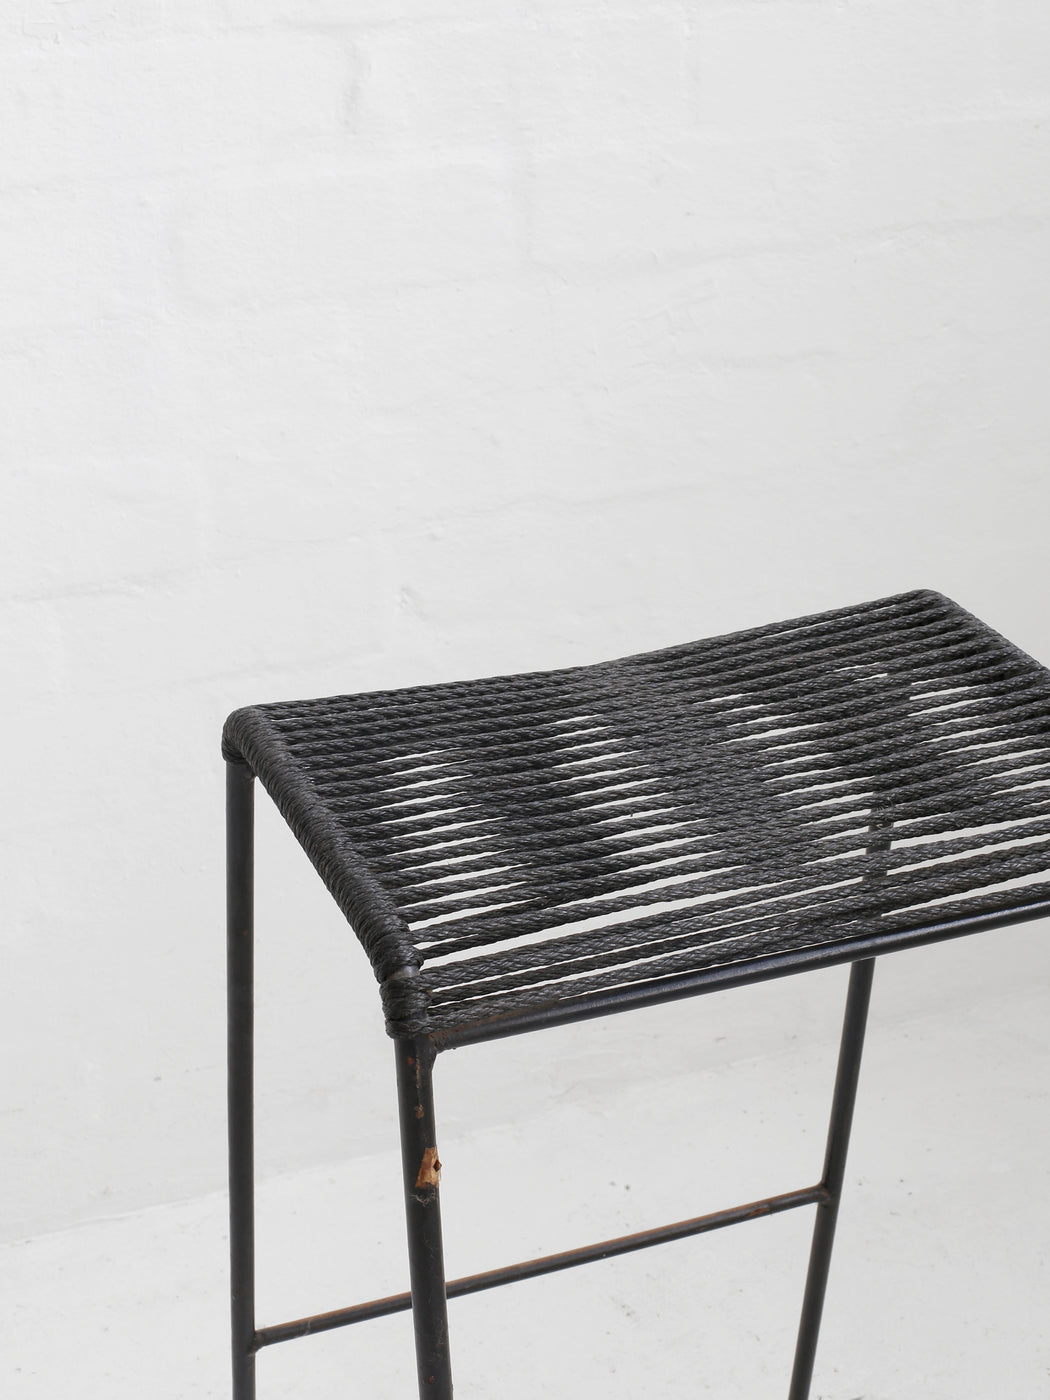 Clement Meadmore Cord Stool